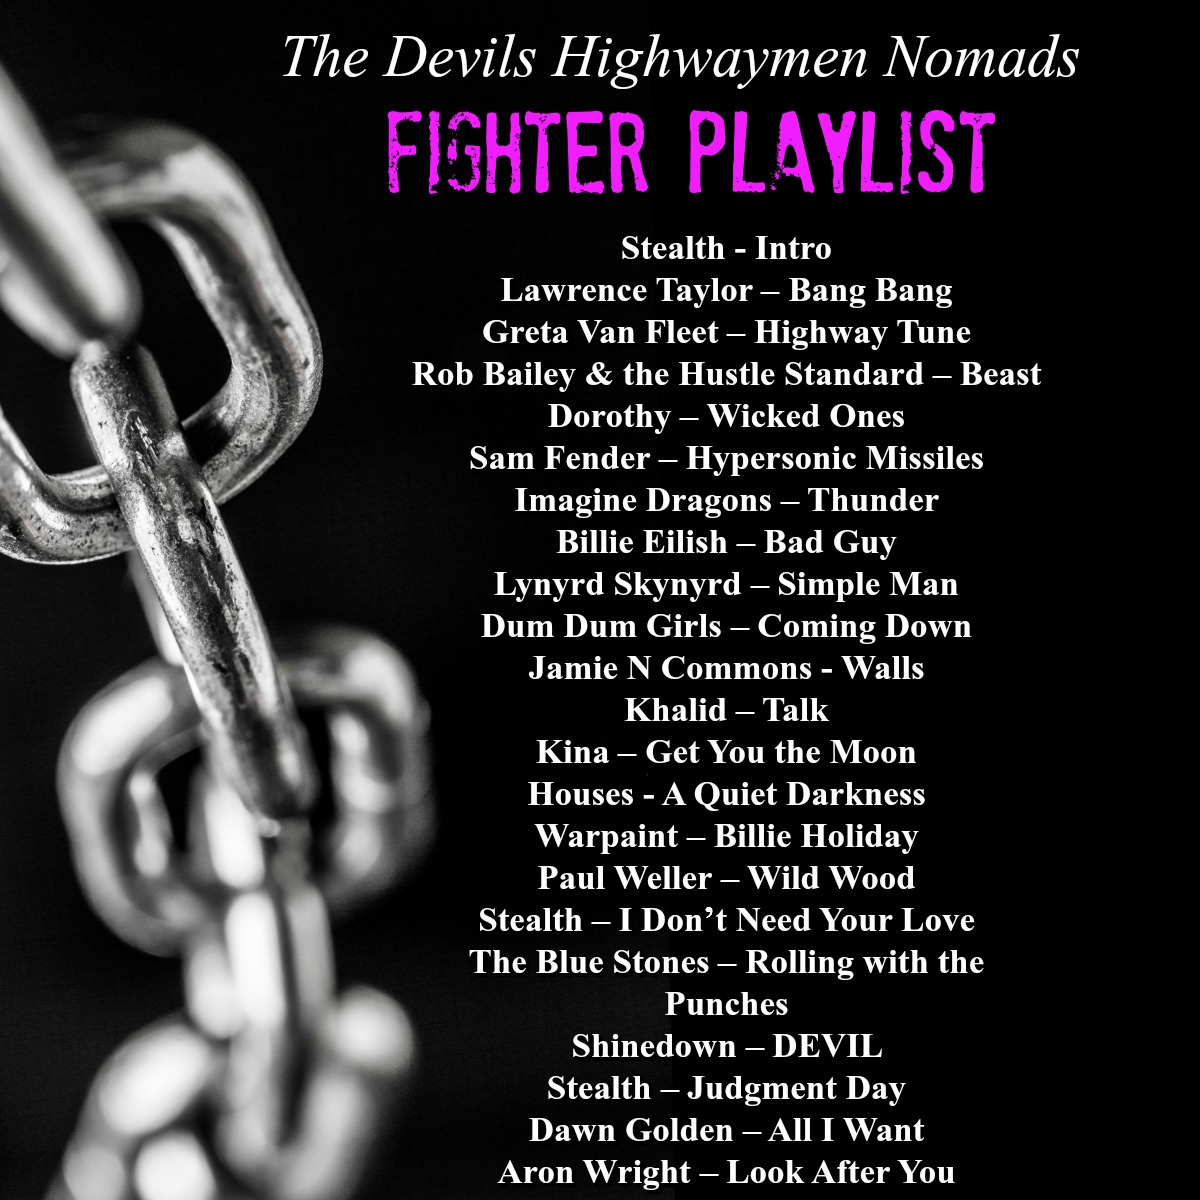 Fighter playlist